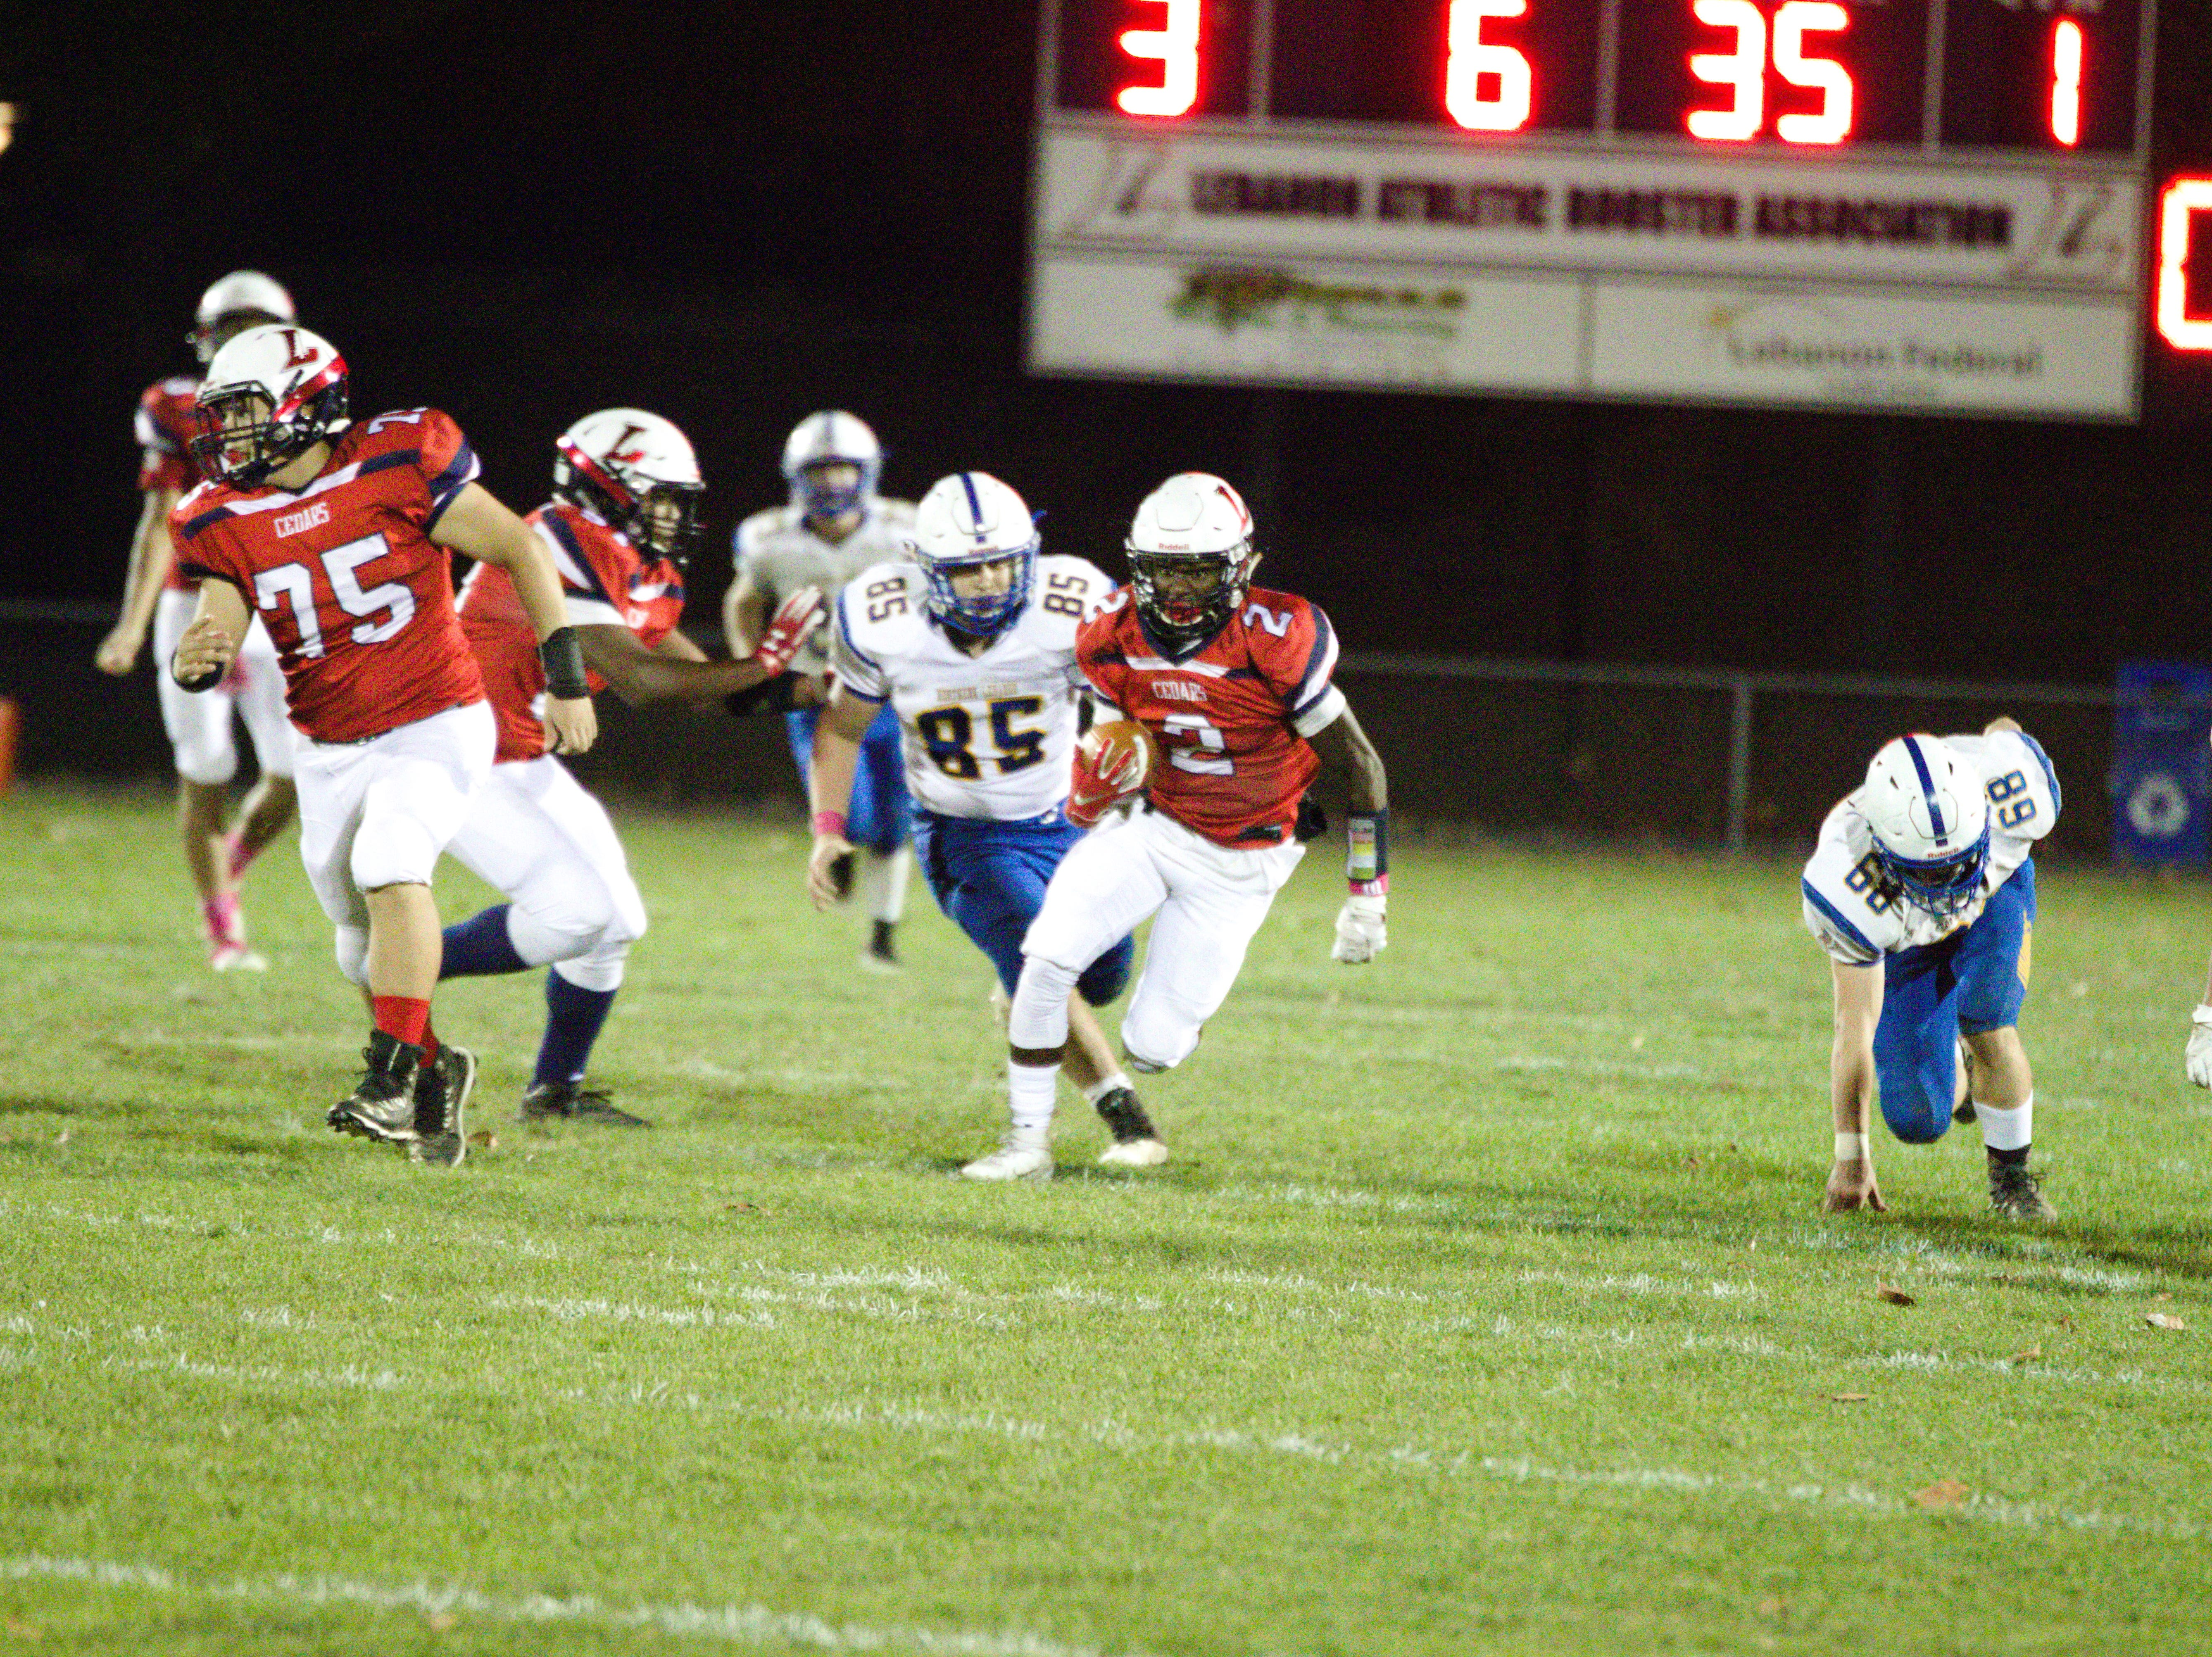 Lebanon's Jahlil YOung breaks free for a big gain.